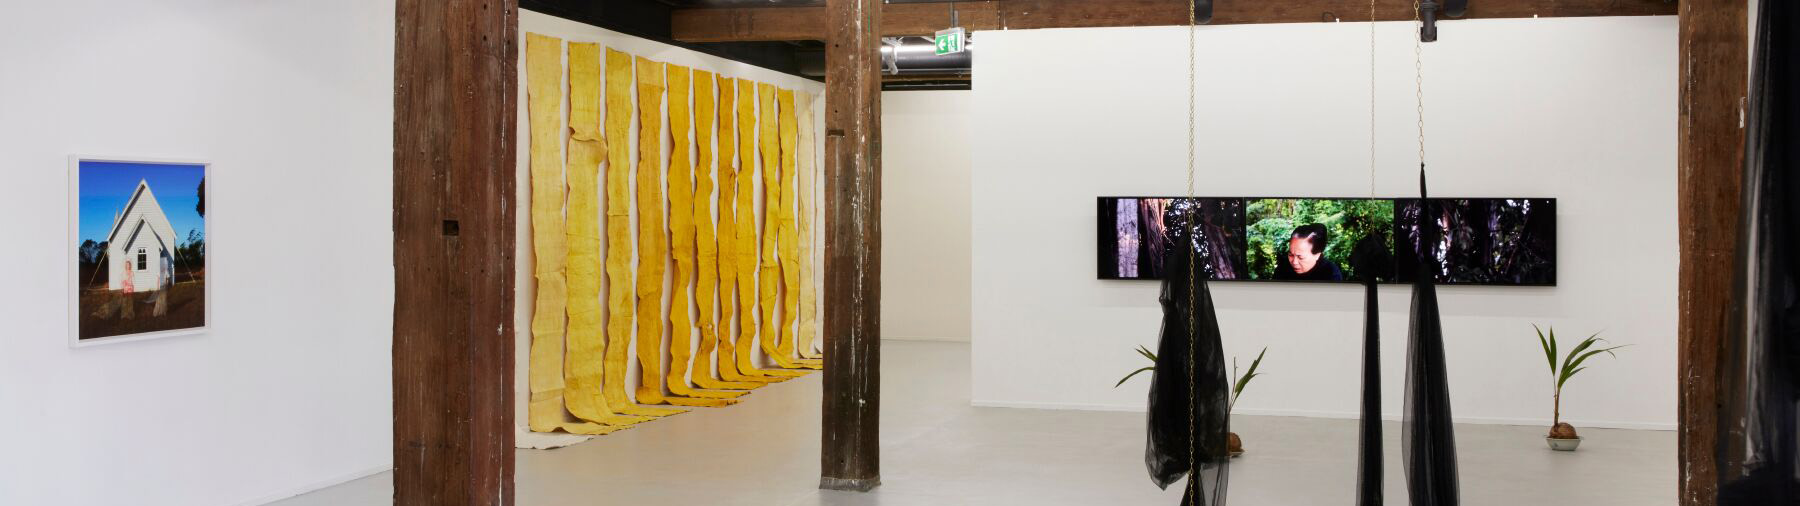 2019 NSW Visual Arts Emerging Fellowship, installation view, Artspace, Sydney. Photo: Zan Wimberley